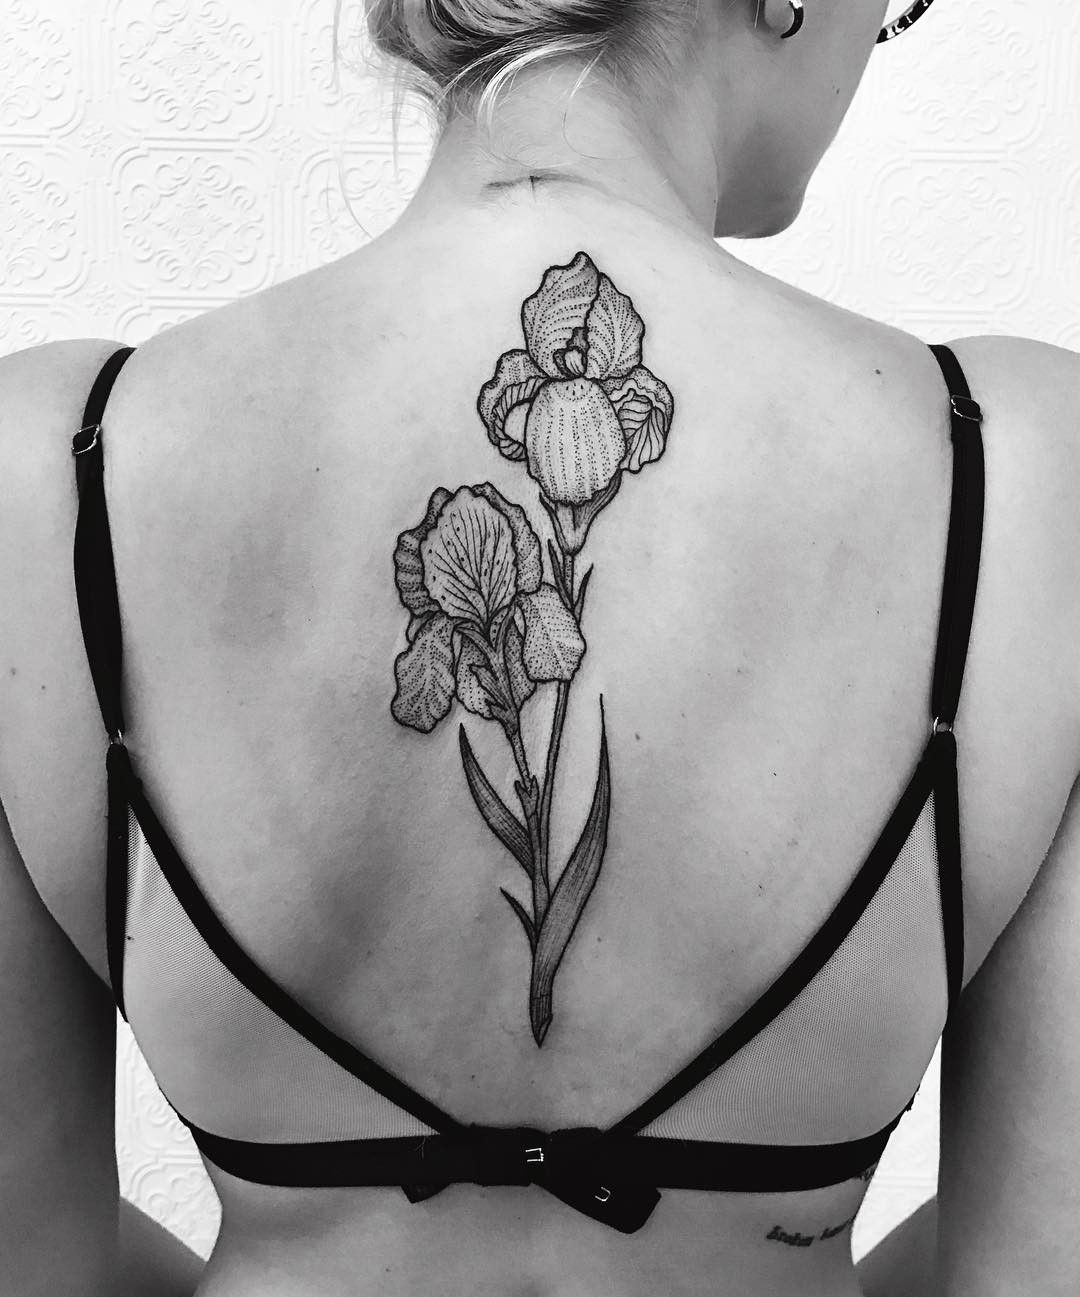 Anka Lavriv Black Iris Tattoo Brooklyn Ny Iris Tattoo Nature Tattoo Sleeve Iris Flower Tattoo